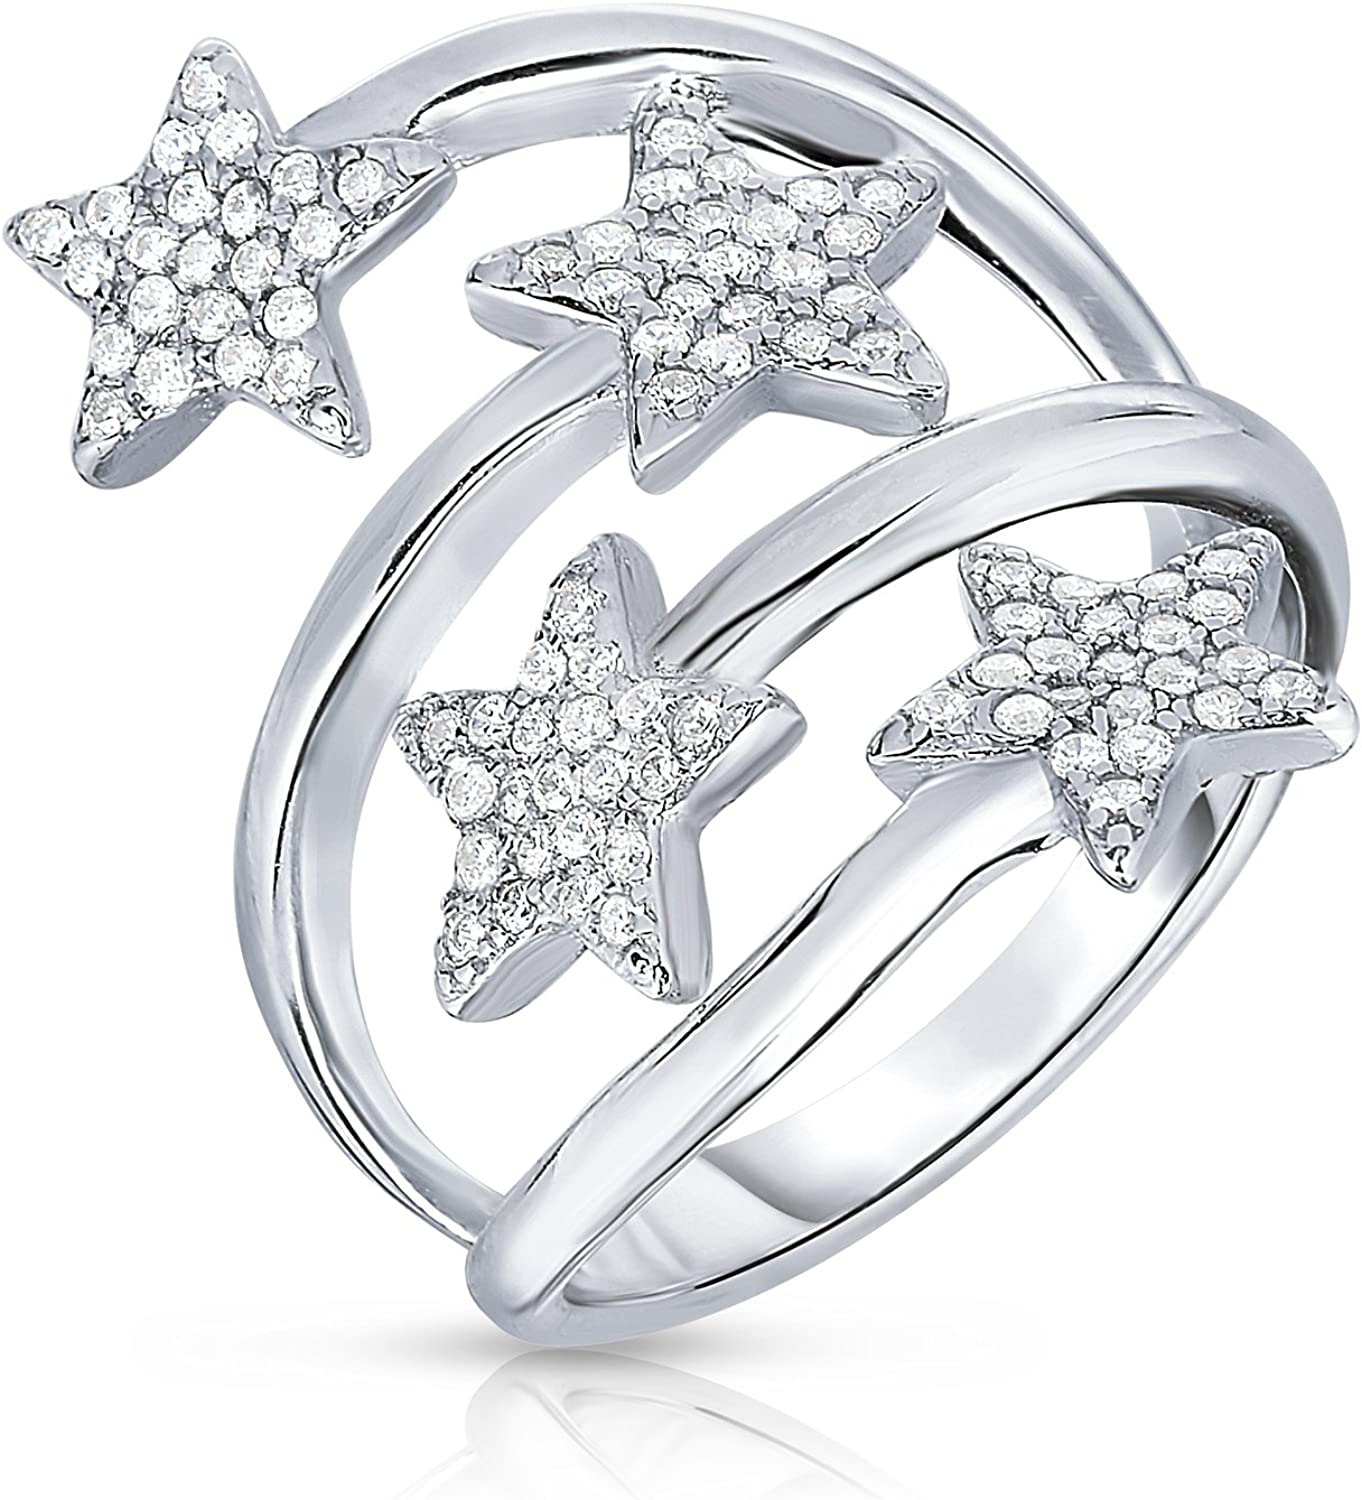 Tilo Jewelry Sterling Silver Star Ring with Cubic Zirconia